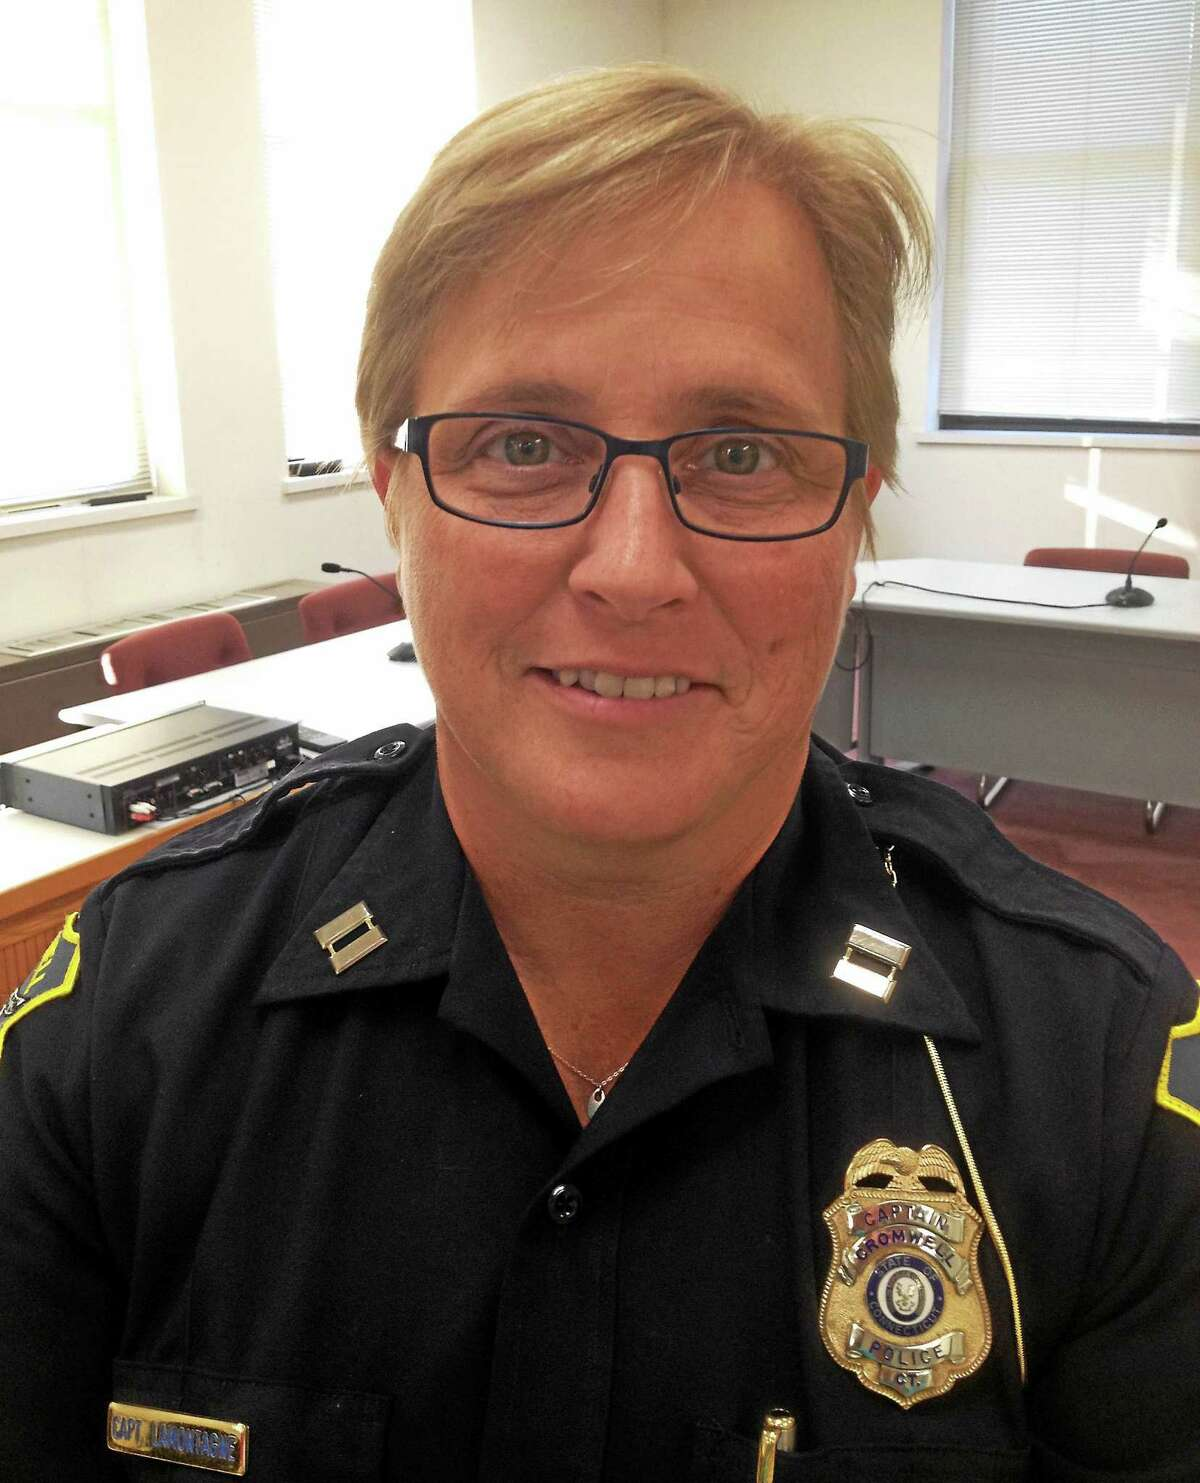 Capt. Denise LaMontagne is the new chief of police in Cromwell.